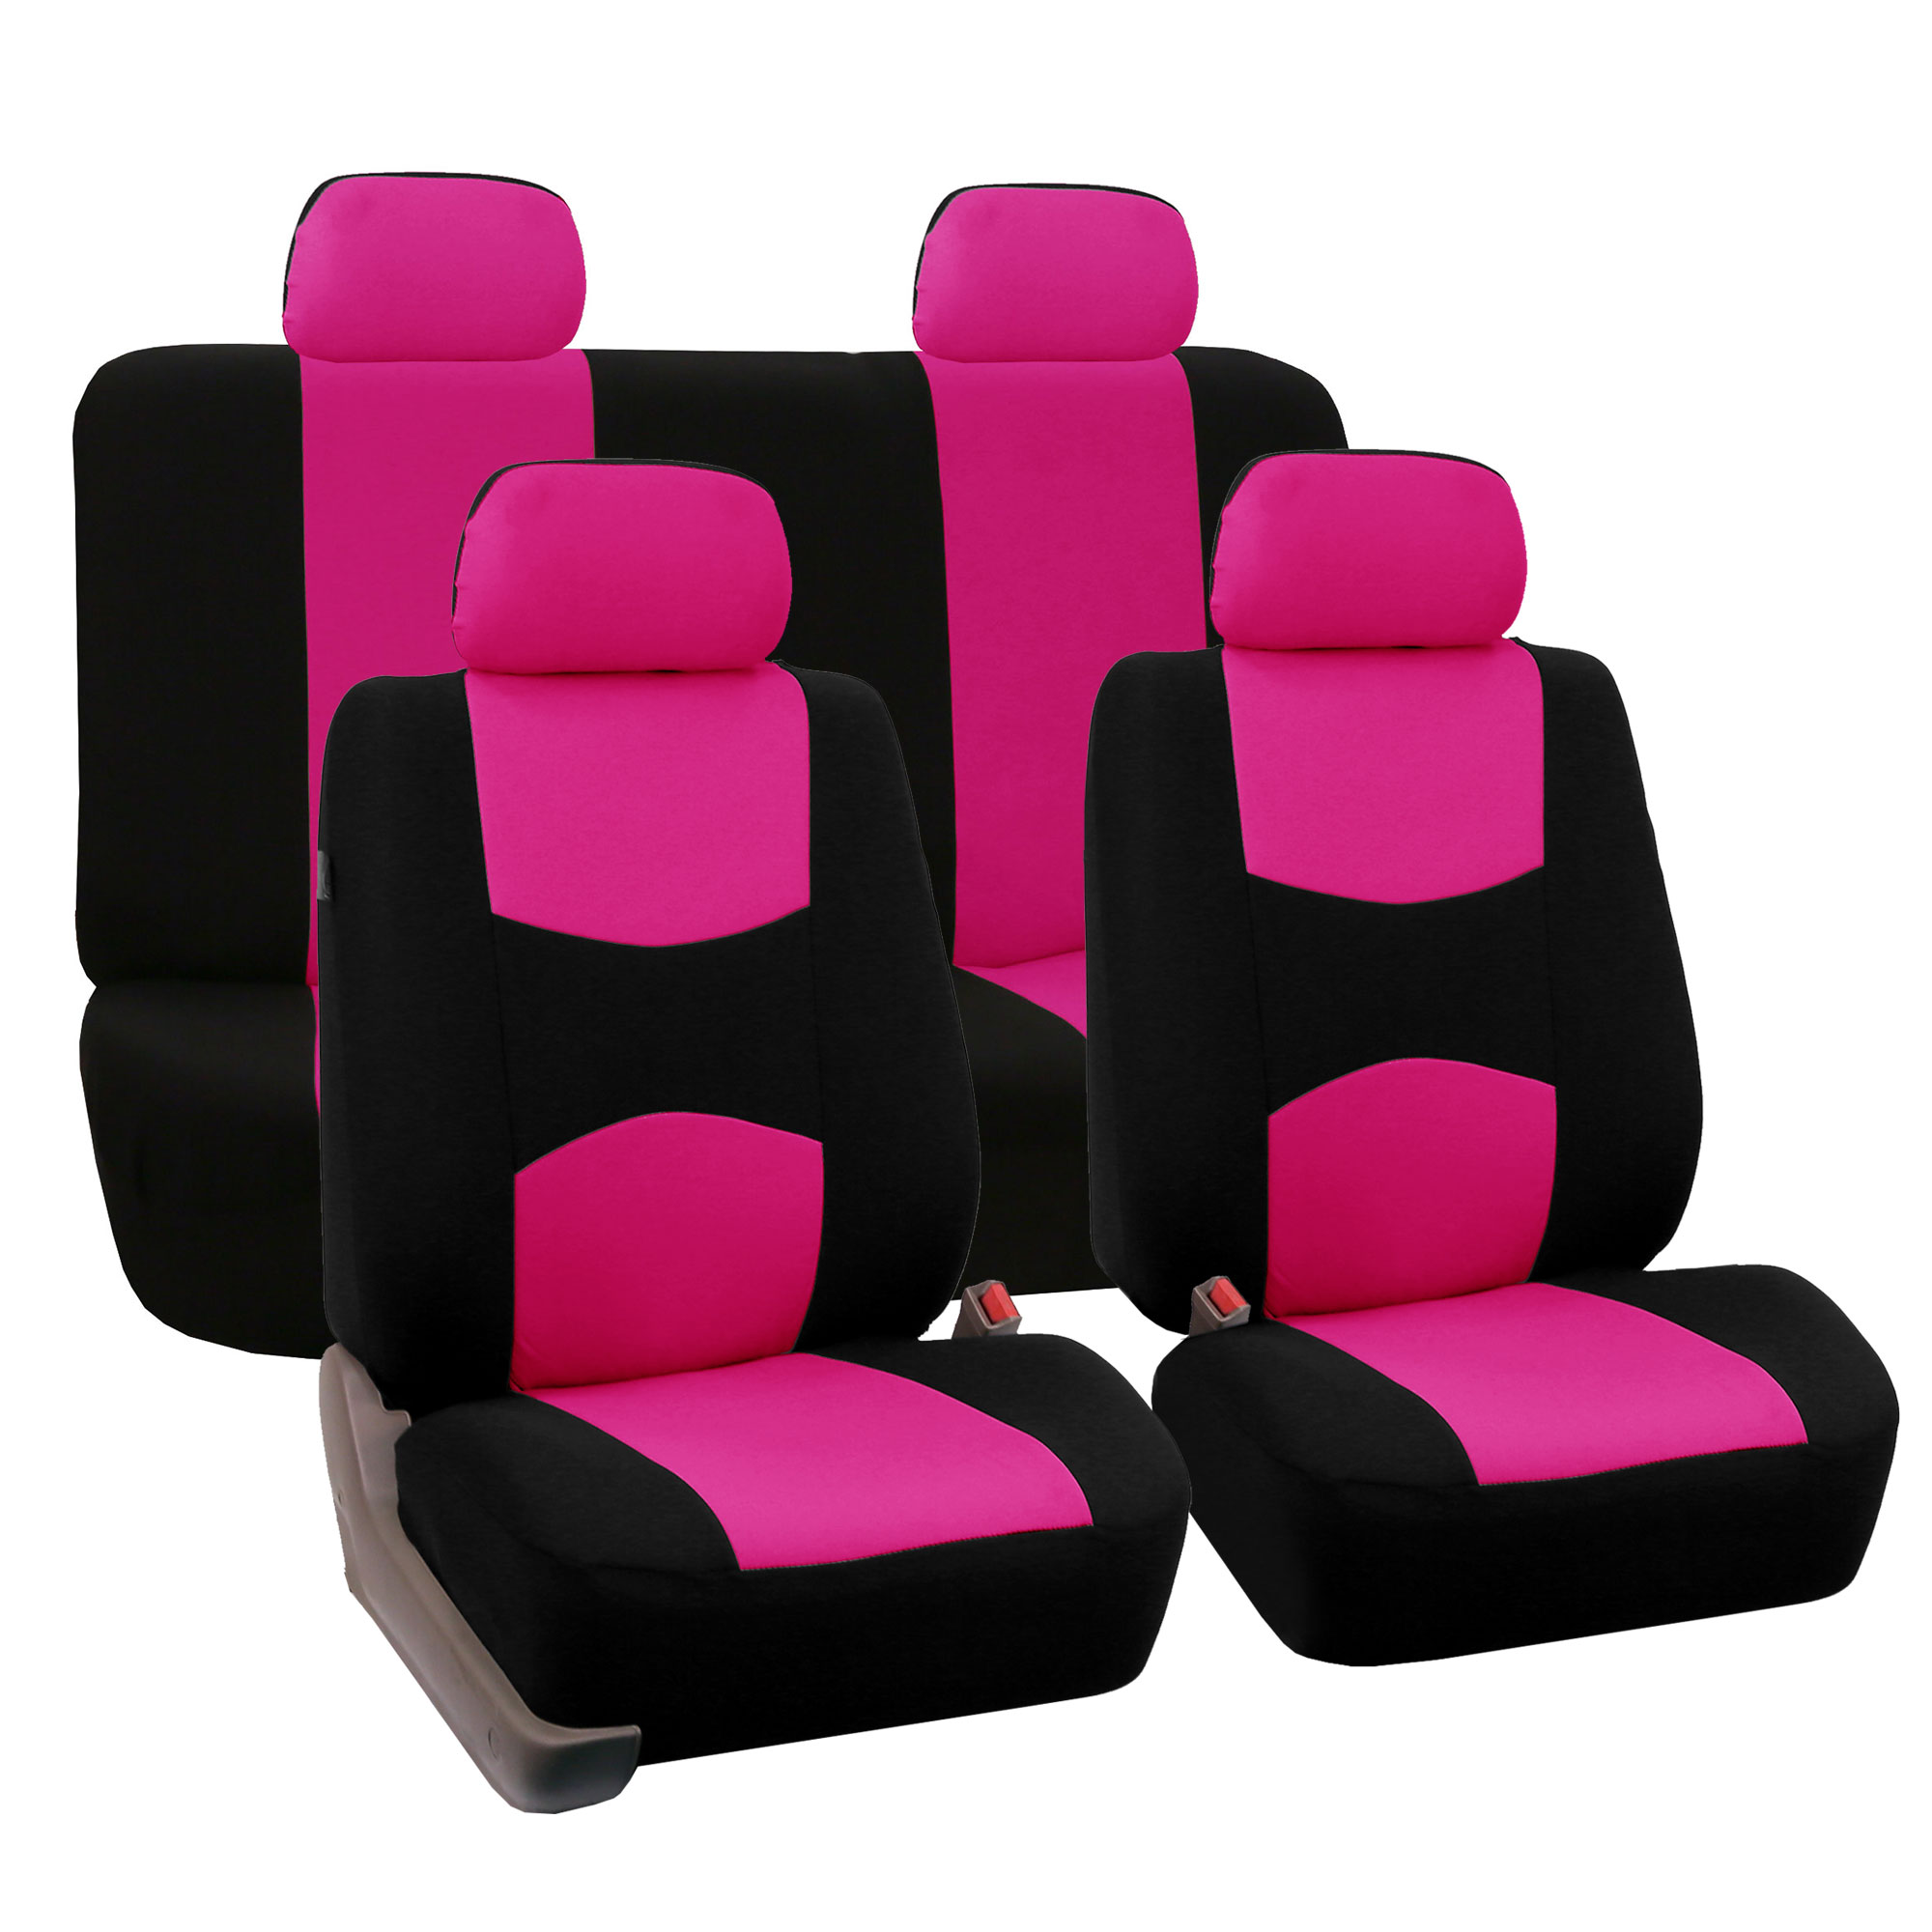 Car Seat Covers Set For Auto 4 Headrests Black Pink With Carpet Floor Mat